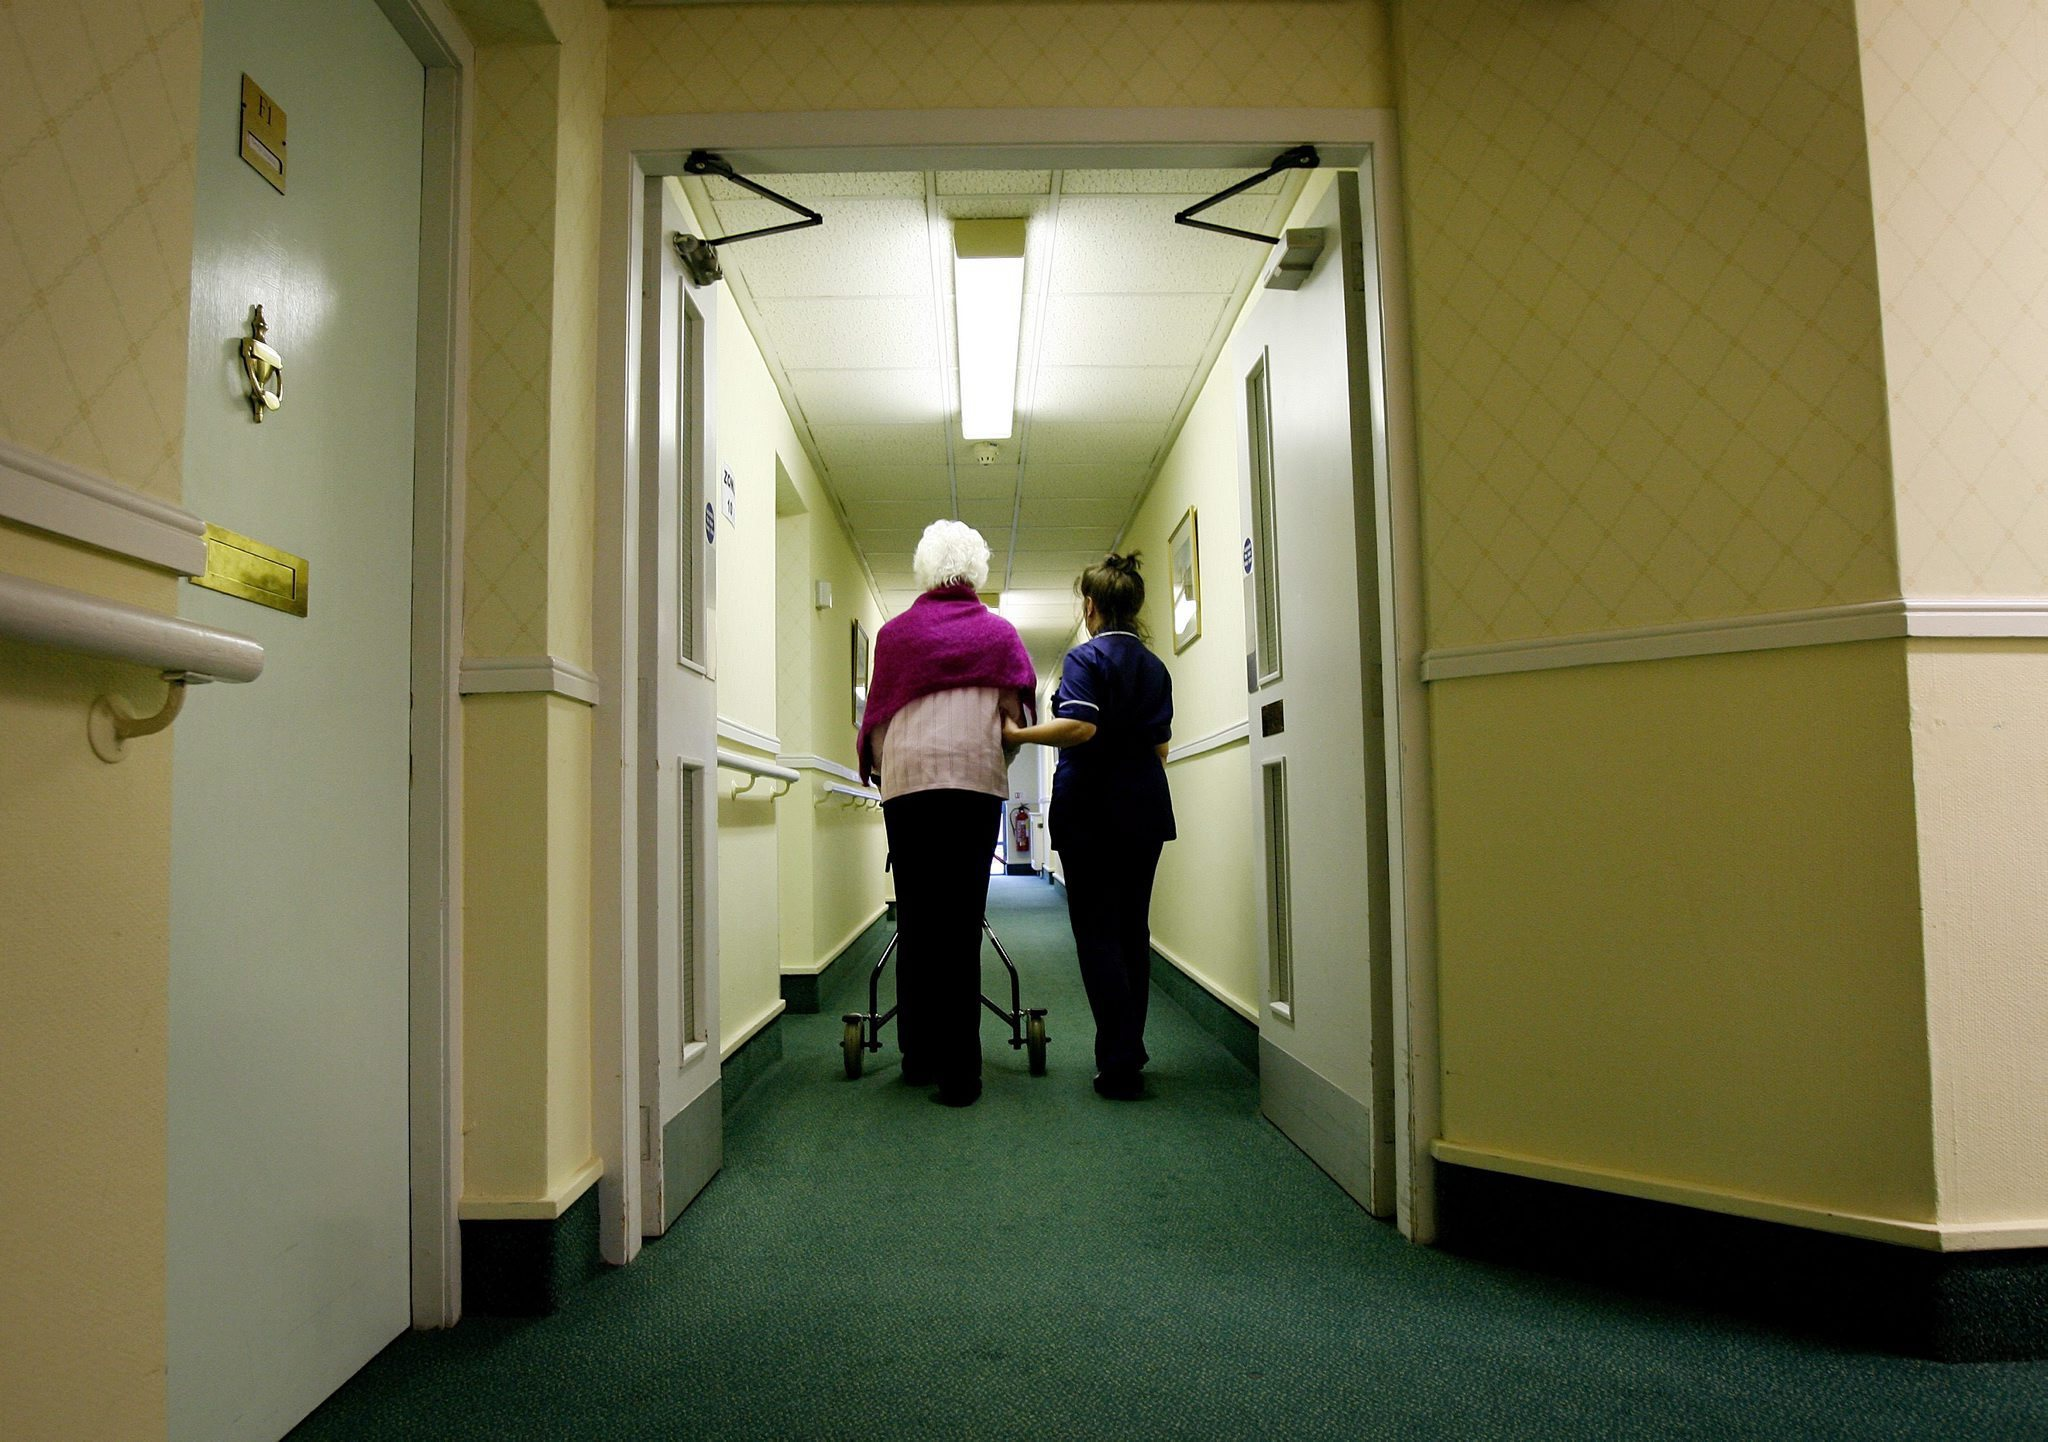 CQC have stated that the care provider 'requires improvement' following a recent inspection